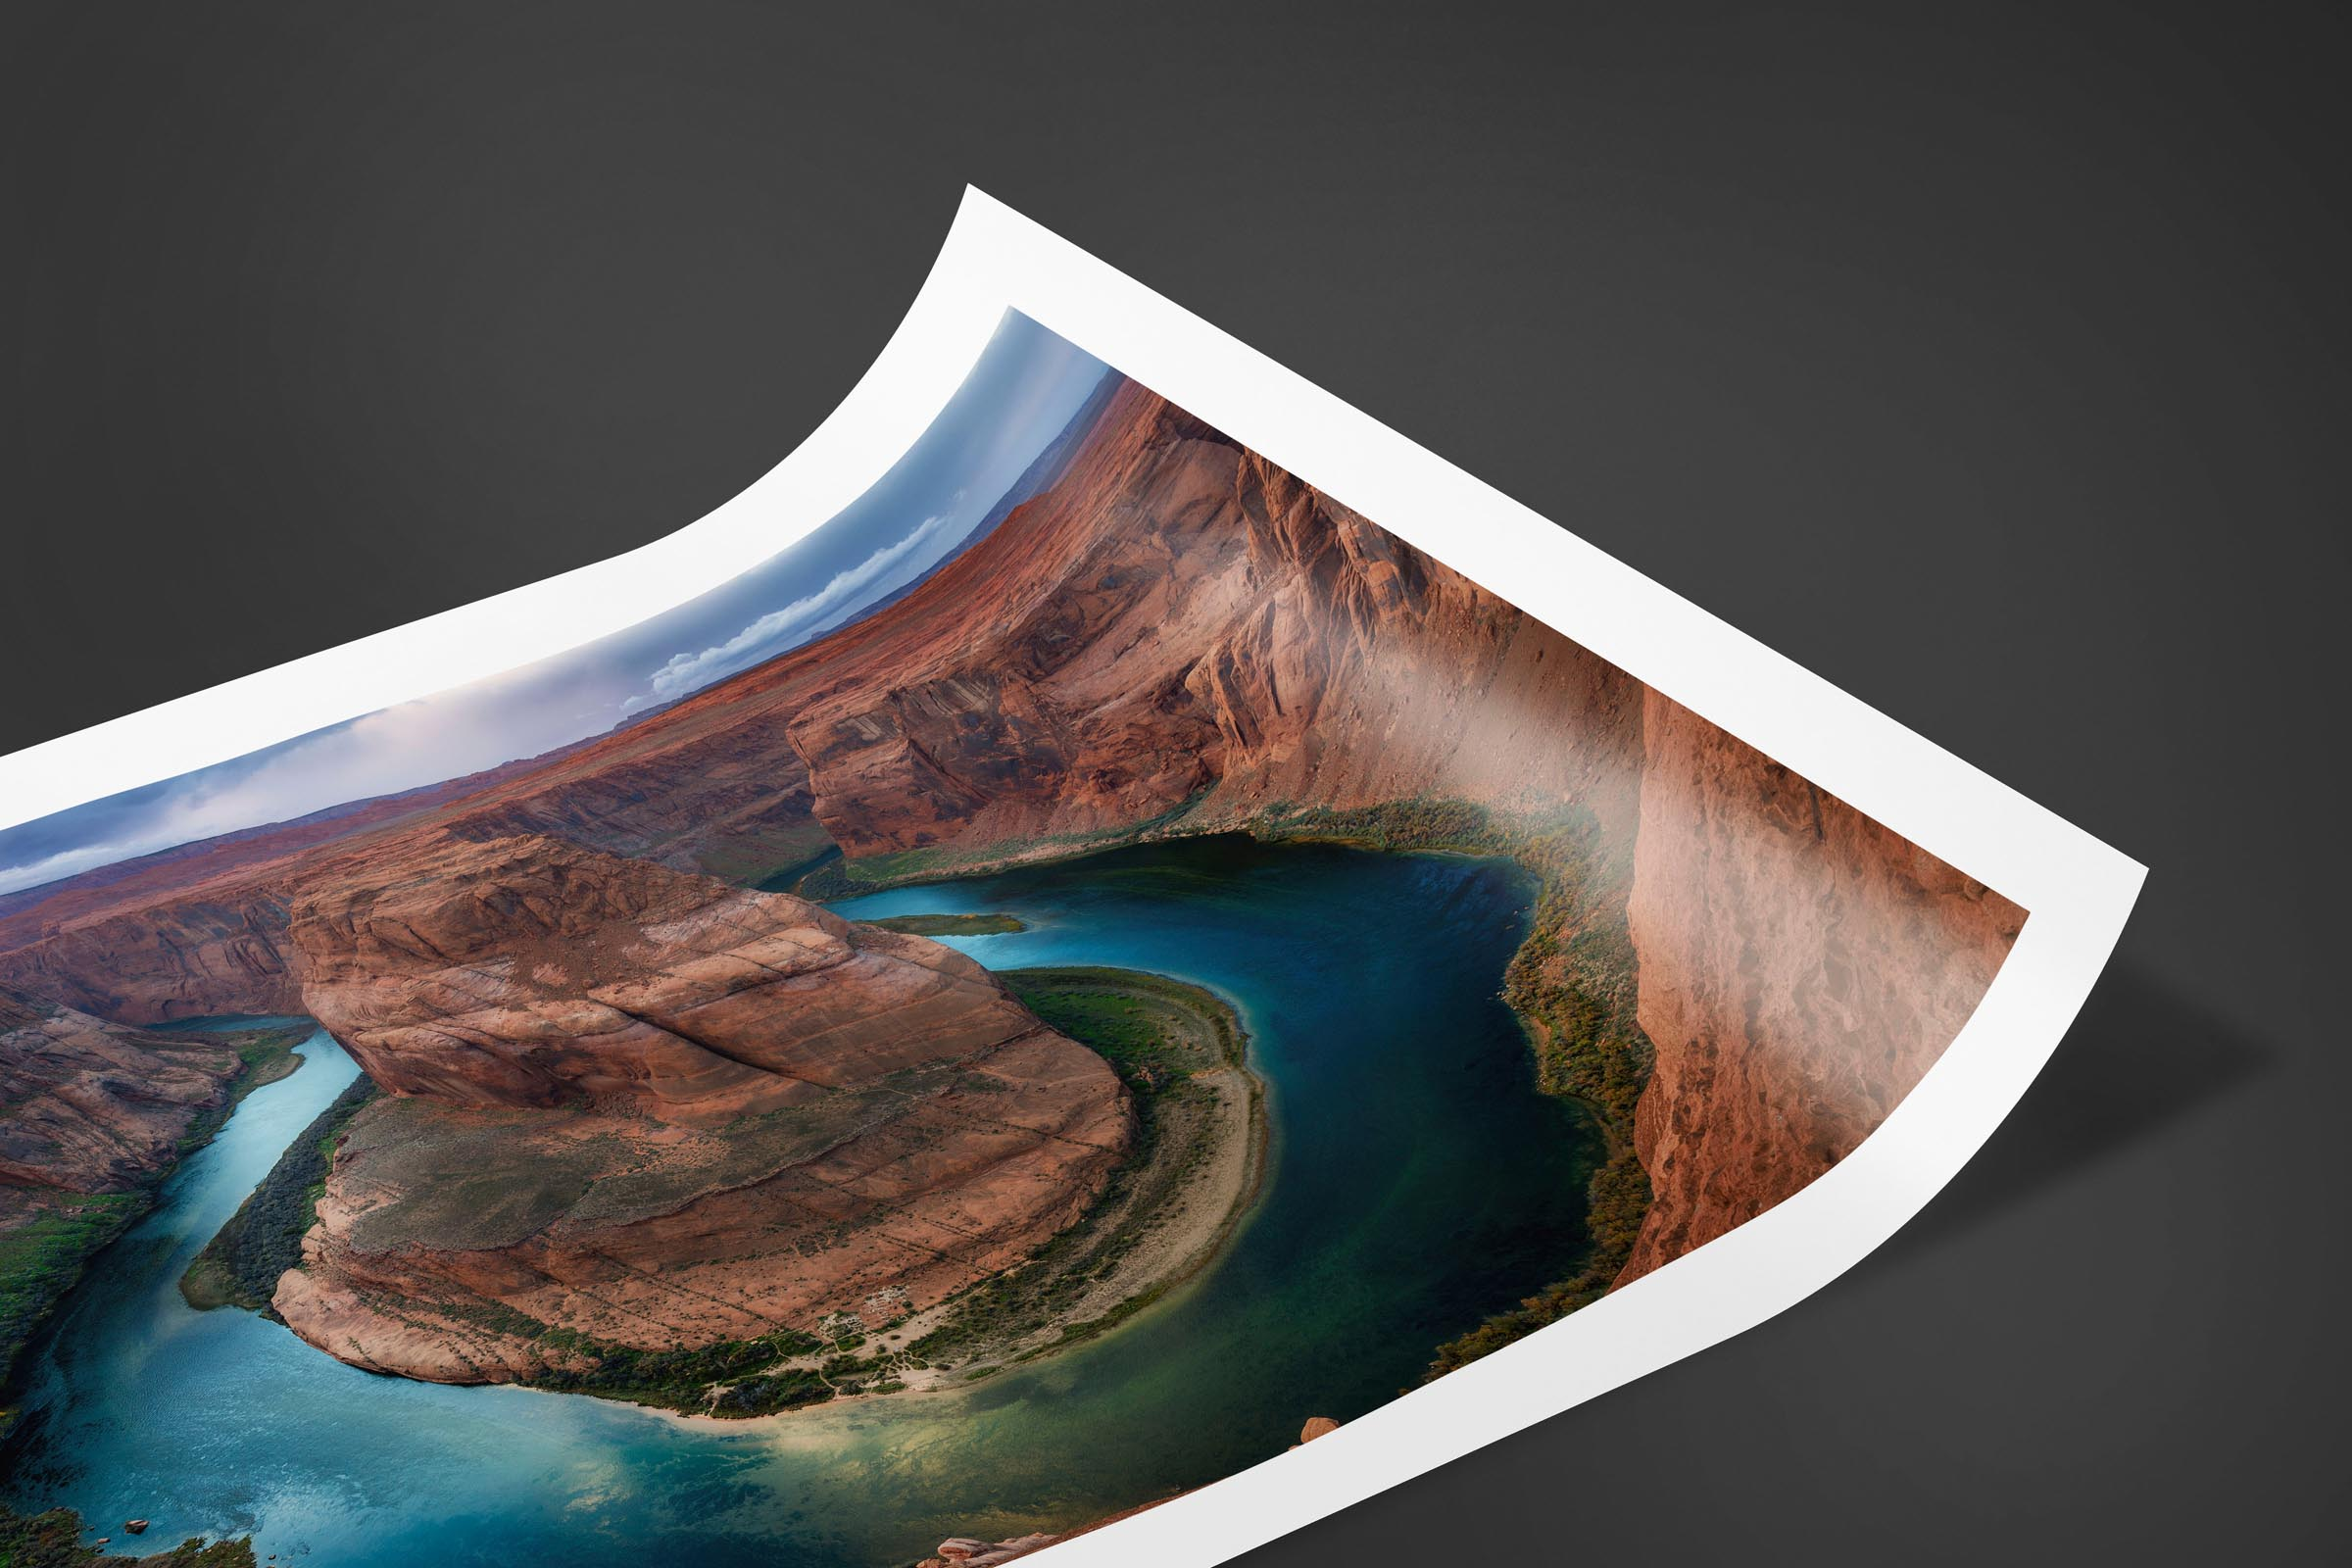 Fine art limited edition print of Horseshoe Bend in Page, Arizona by Brent Goldman Photography